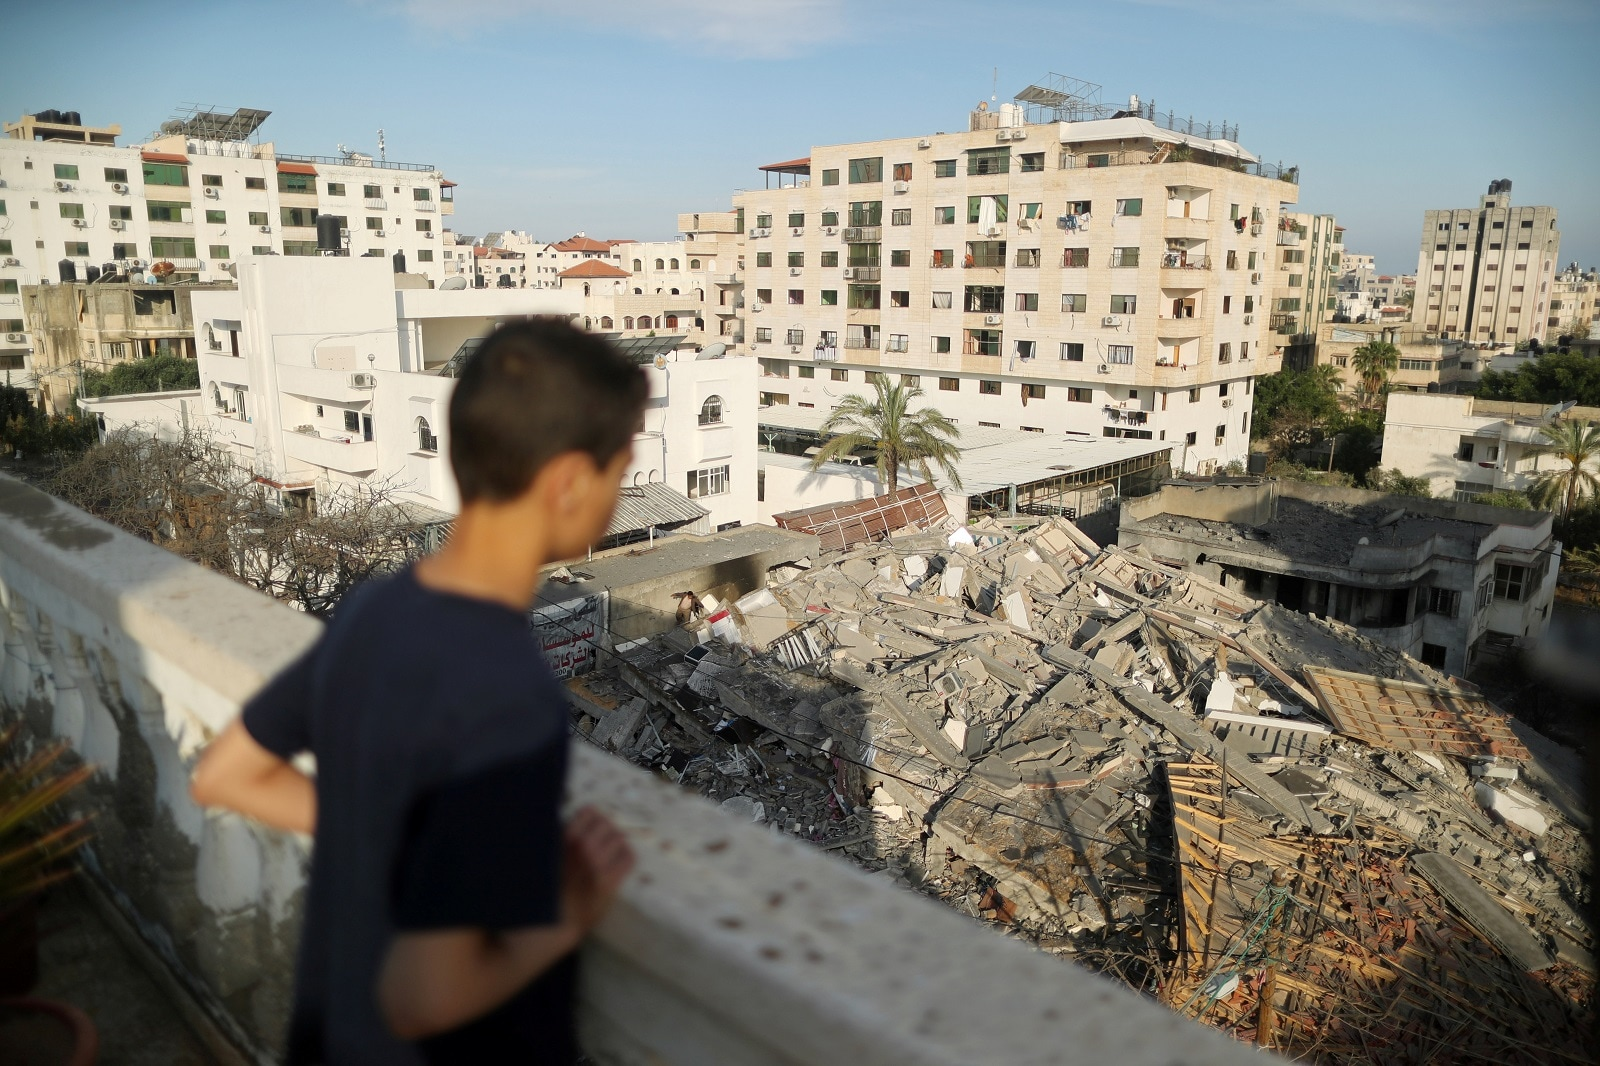 A Palestinian boy looks at the remains of a building that was destroyed in Israeli air strikes, in Gaza City May 5, 2019. REUTERS/Suhaib Salem